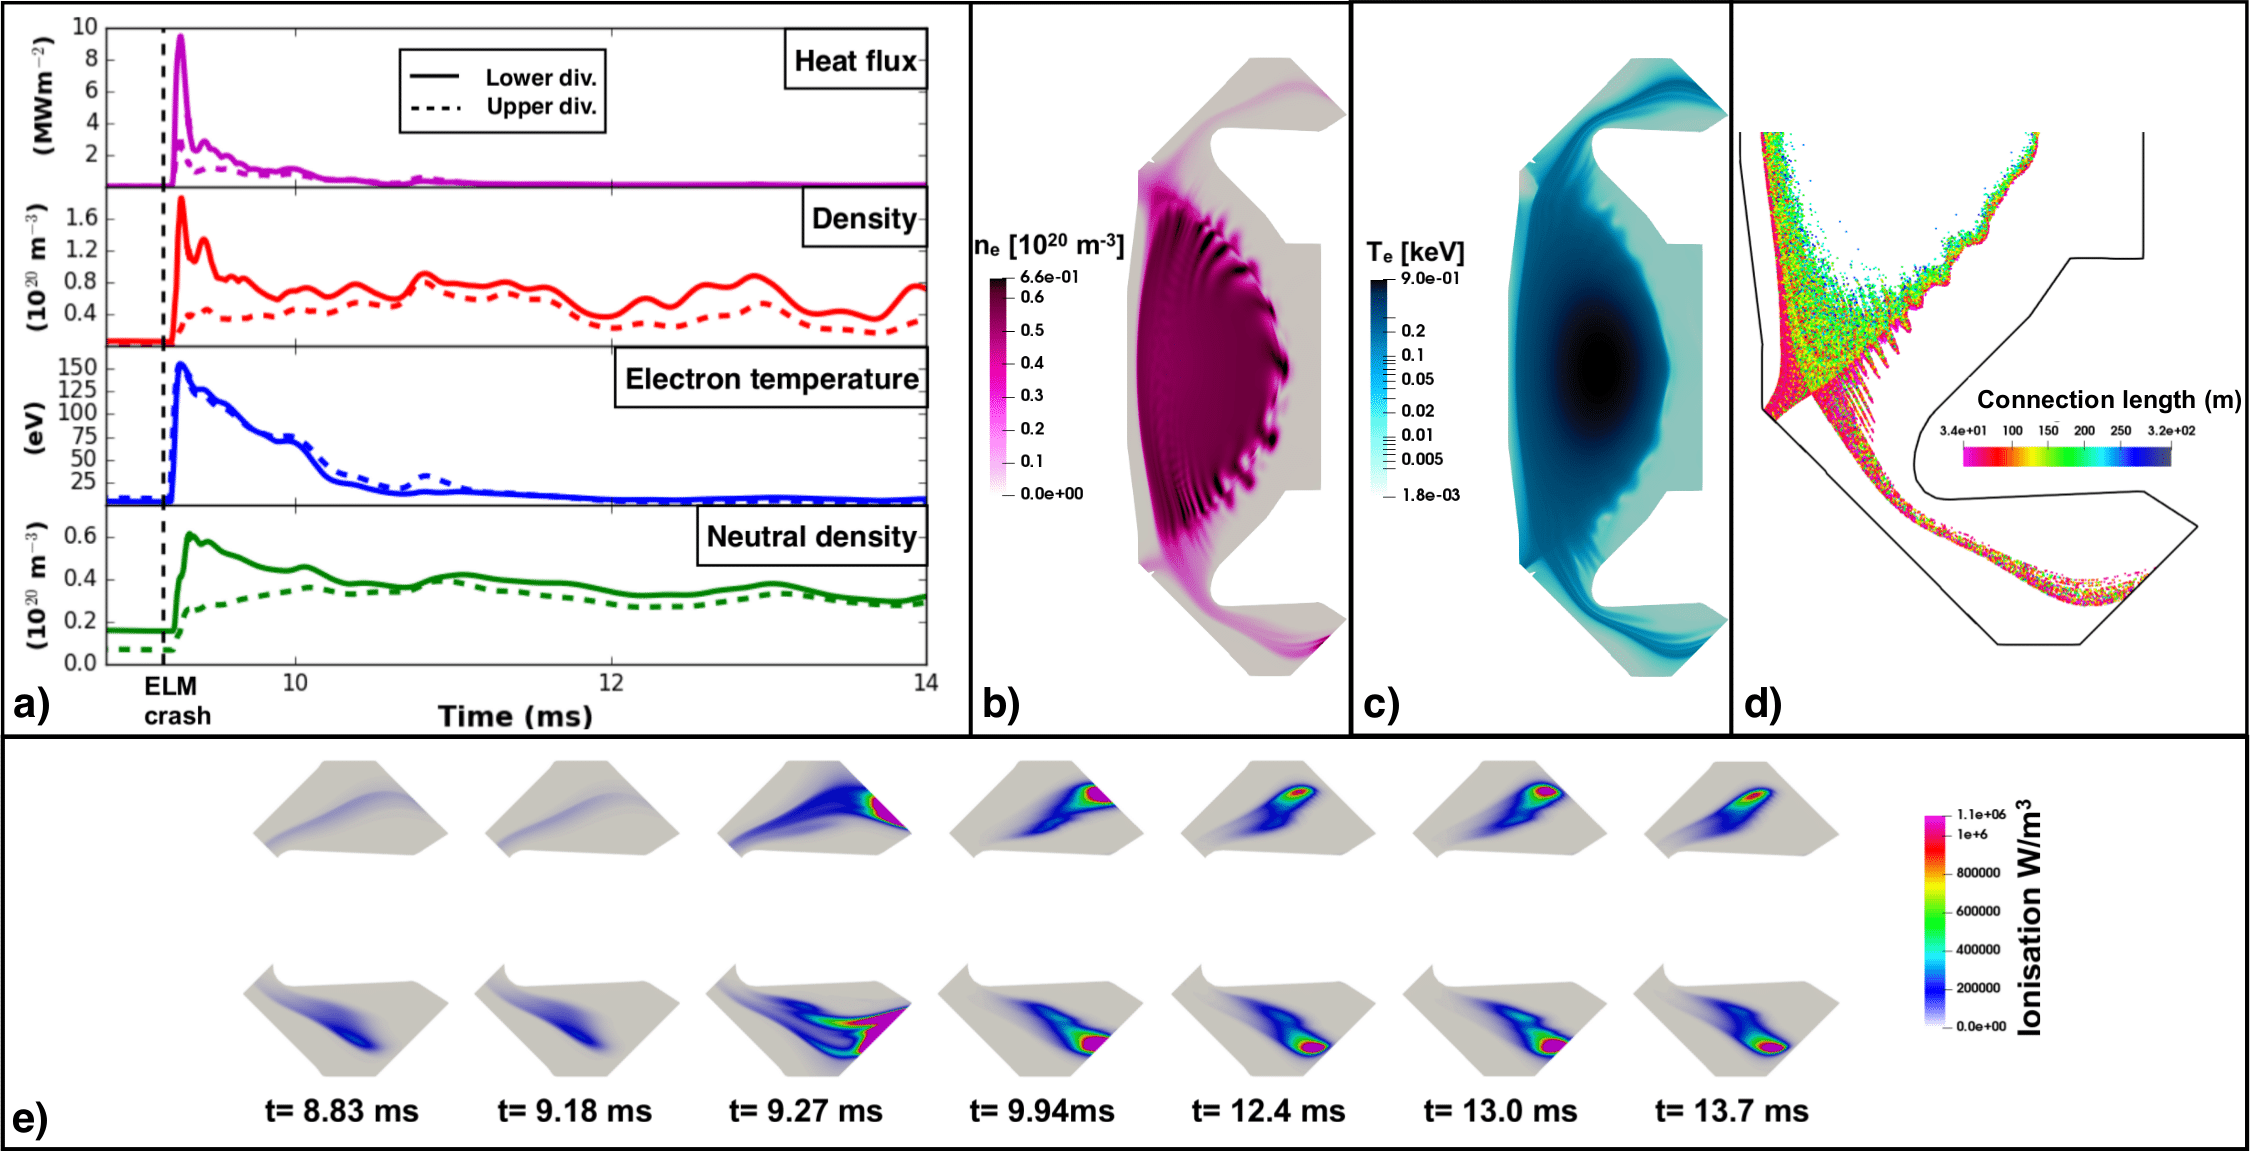 a) Evolution of the peak values to the outer target. Poloidal plot of plasma density b) and electron temperature c) during the ELM. d) Poincaré plot of magnetic field structure during the ELM. e) Evolution of the ionization in the Super-X divertors